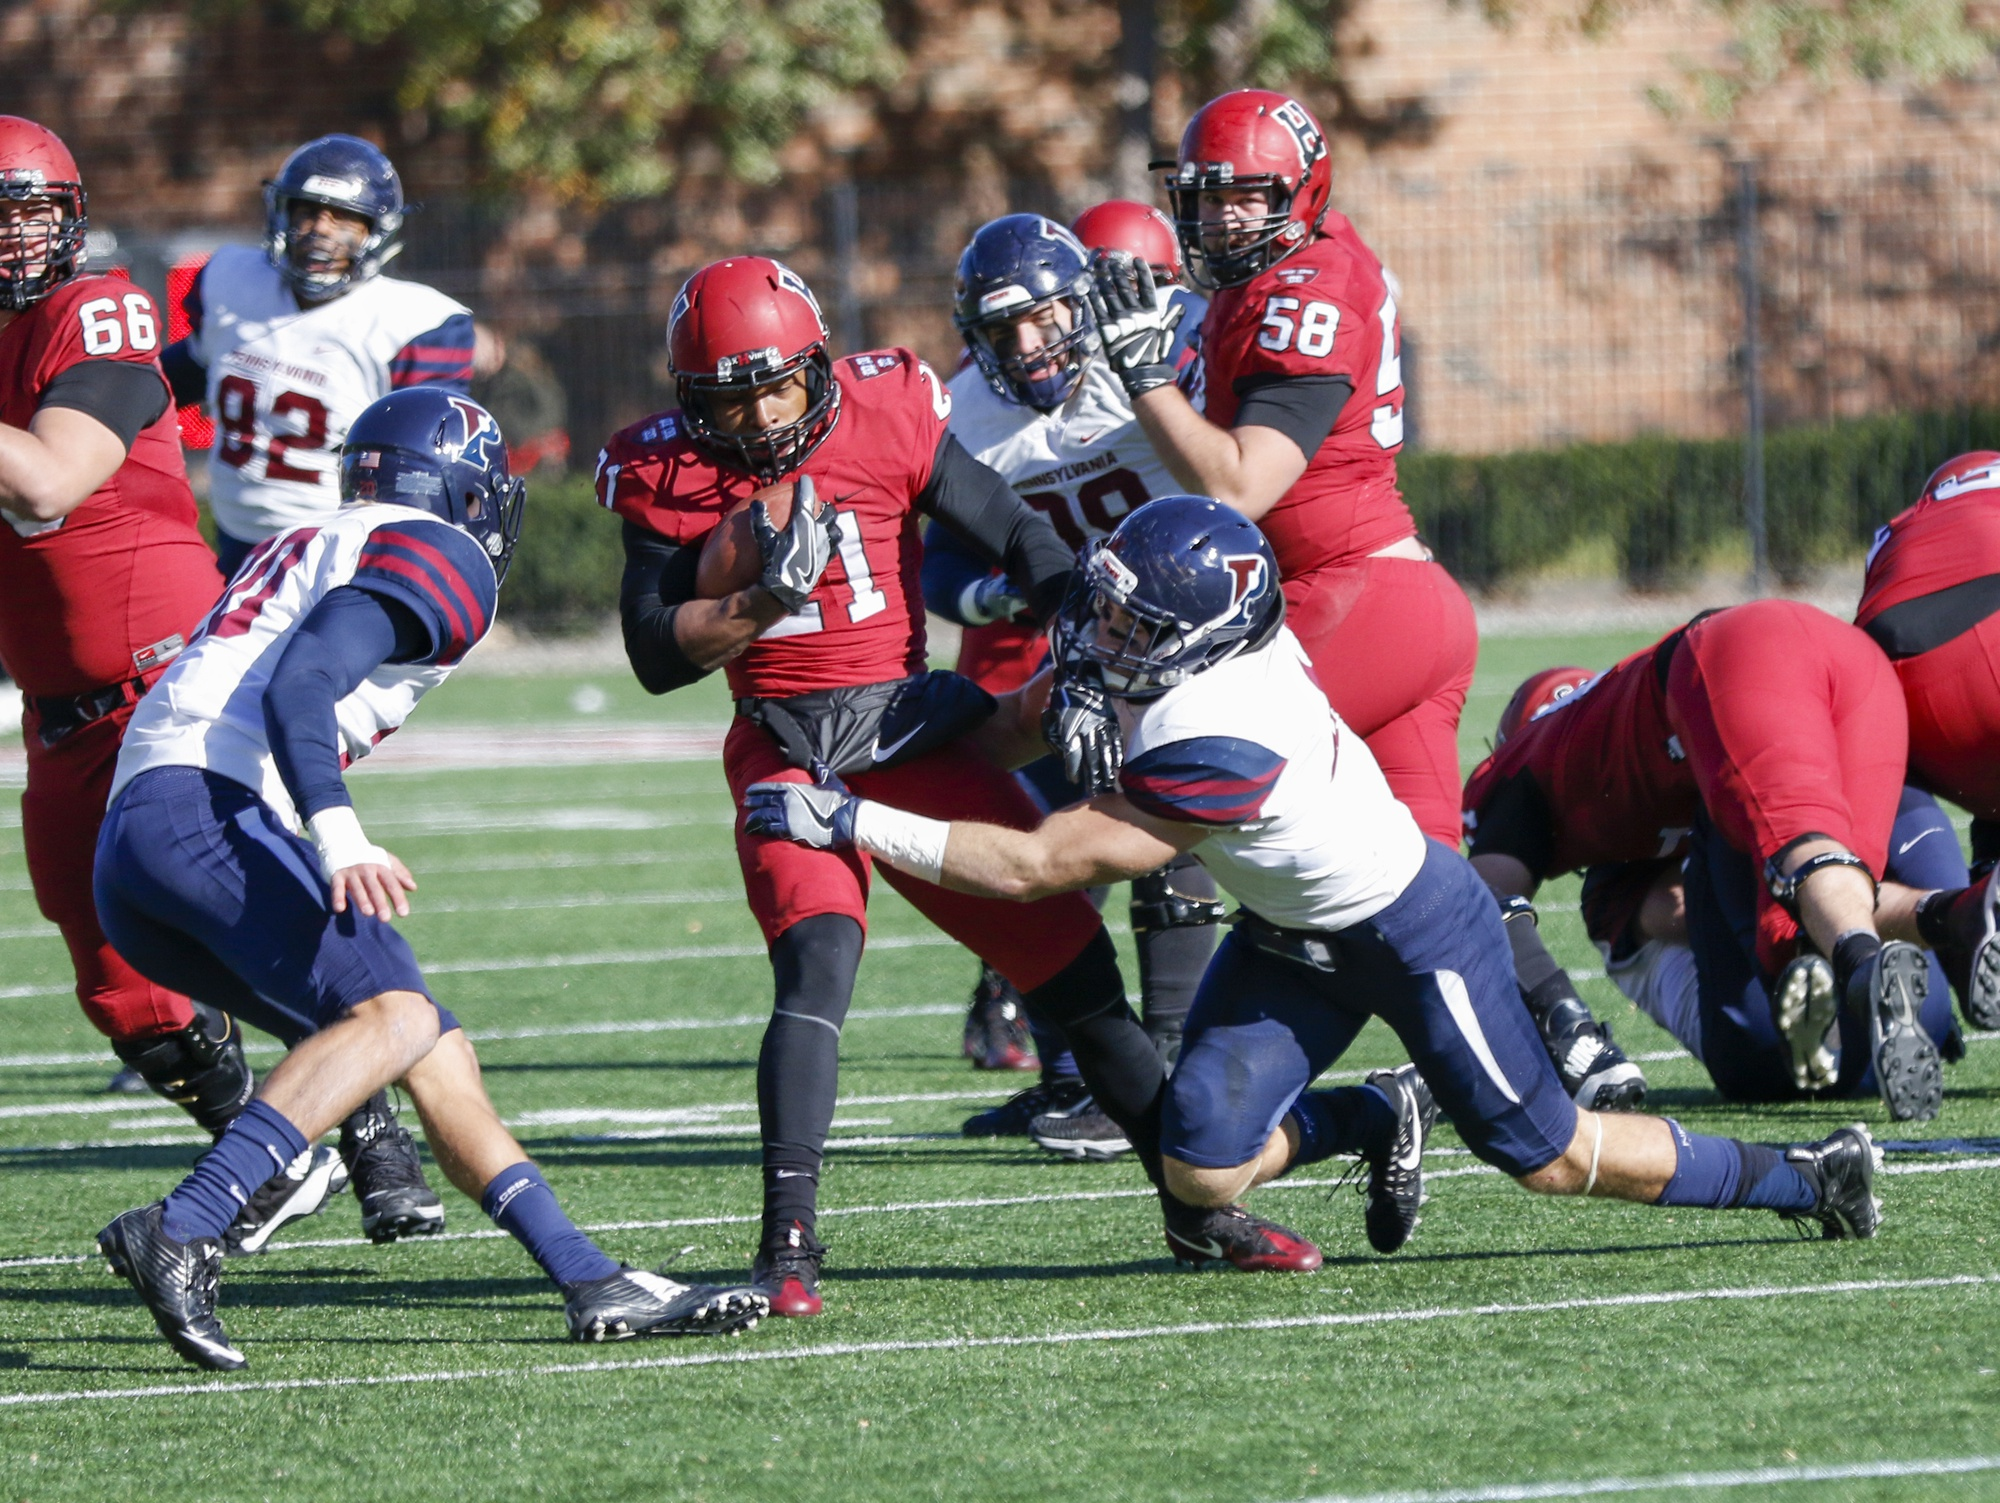 Quakers tacklers wrap up junior running back Charlie Booker. The rusher finished with 35 yards, his lowest total of the year, and two fumbles.